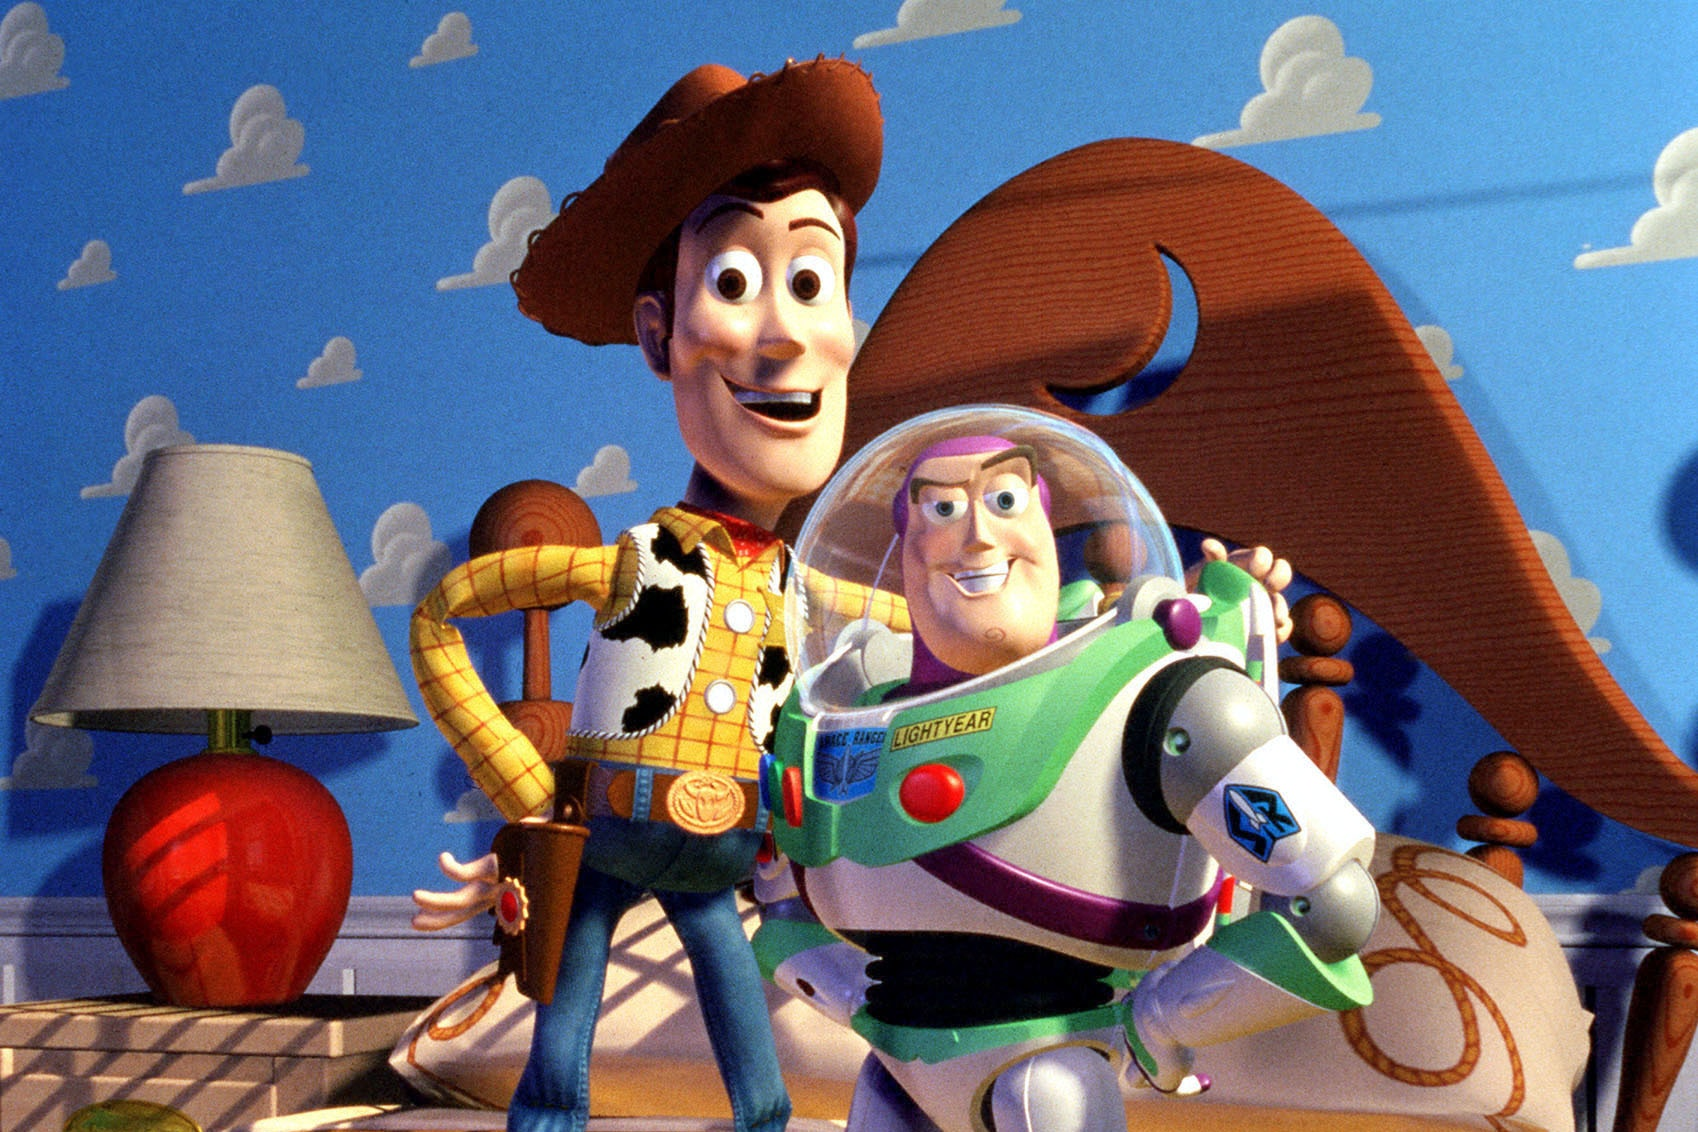 Toy Story Buzz and Woody